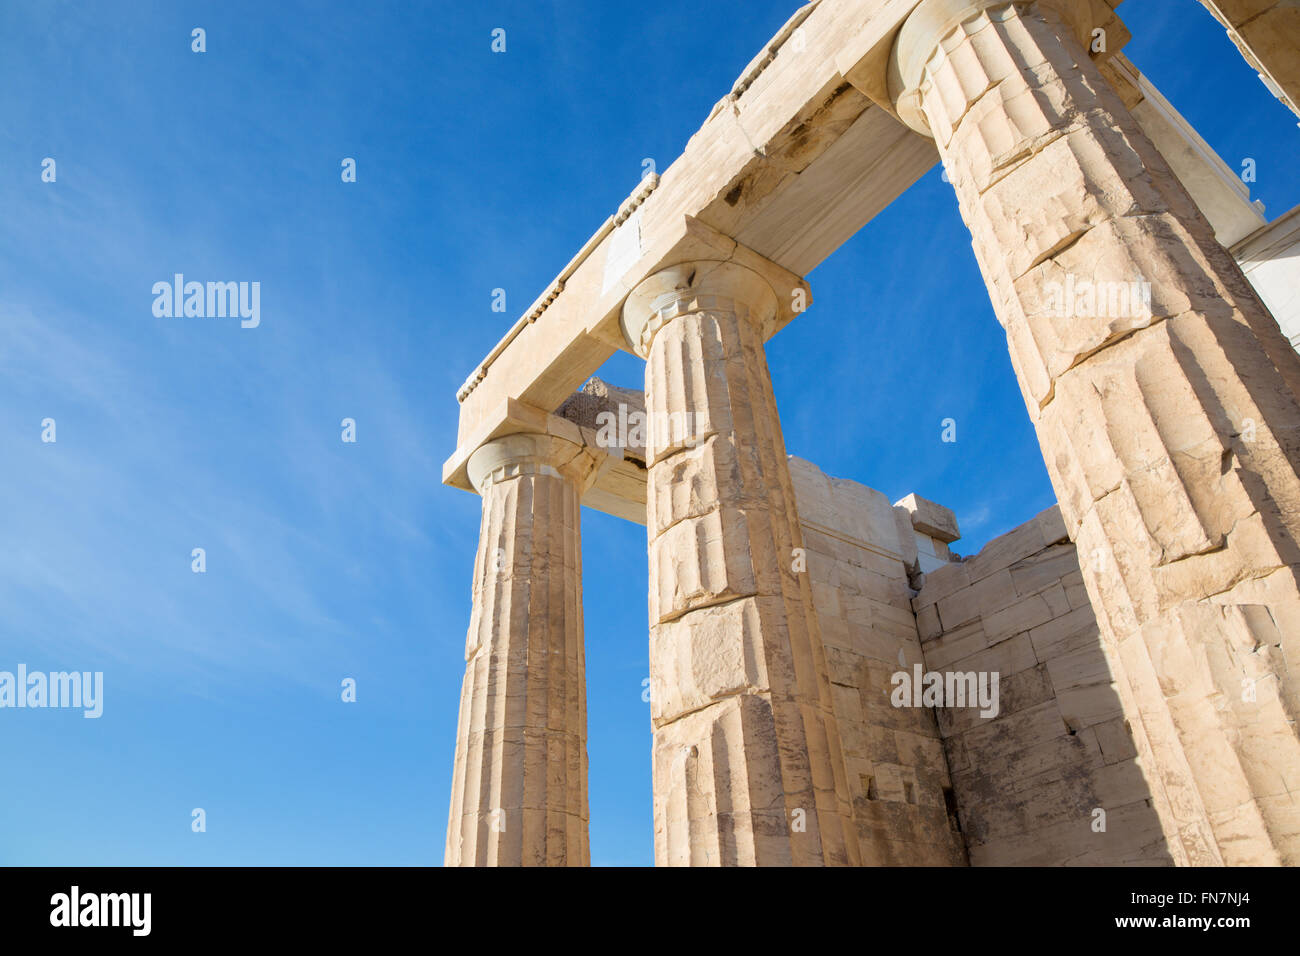 Athens - The colums of Propylaea on Acropolis with the doric capitals. - Stock Image